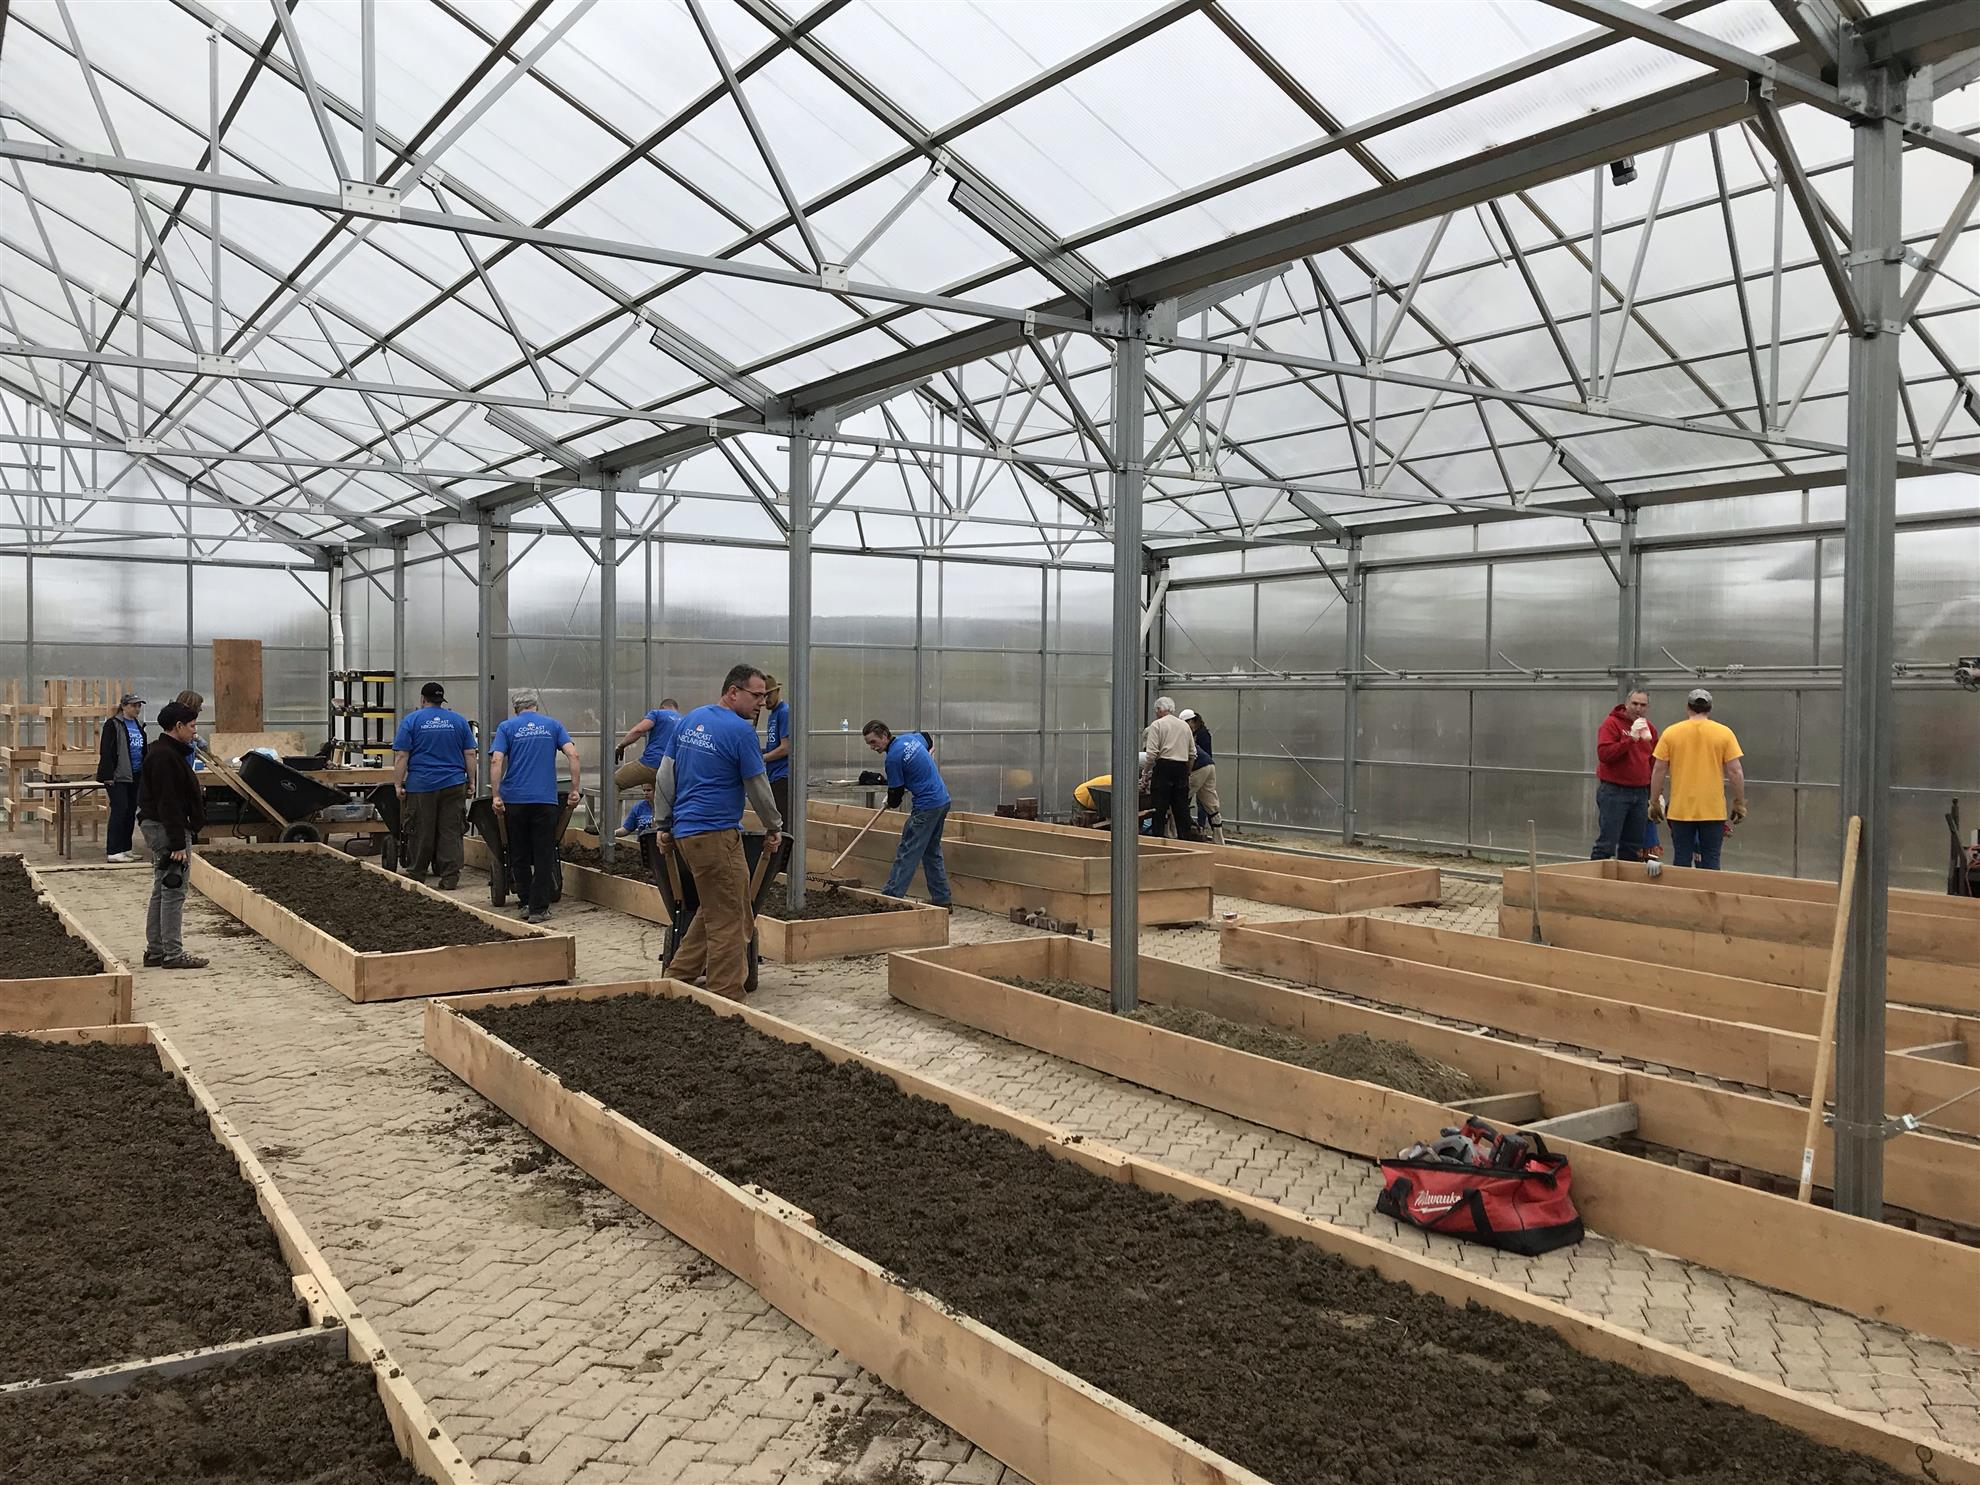 Comcast Cares Day at Educational Greenhouse